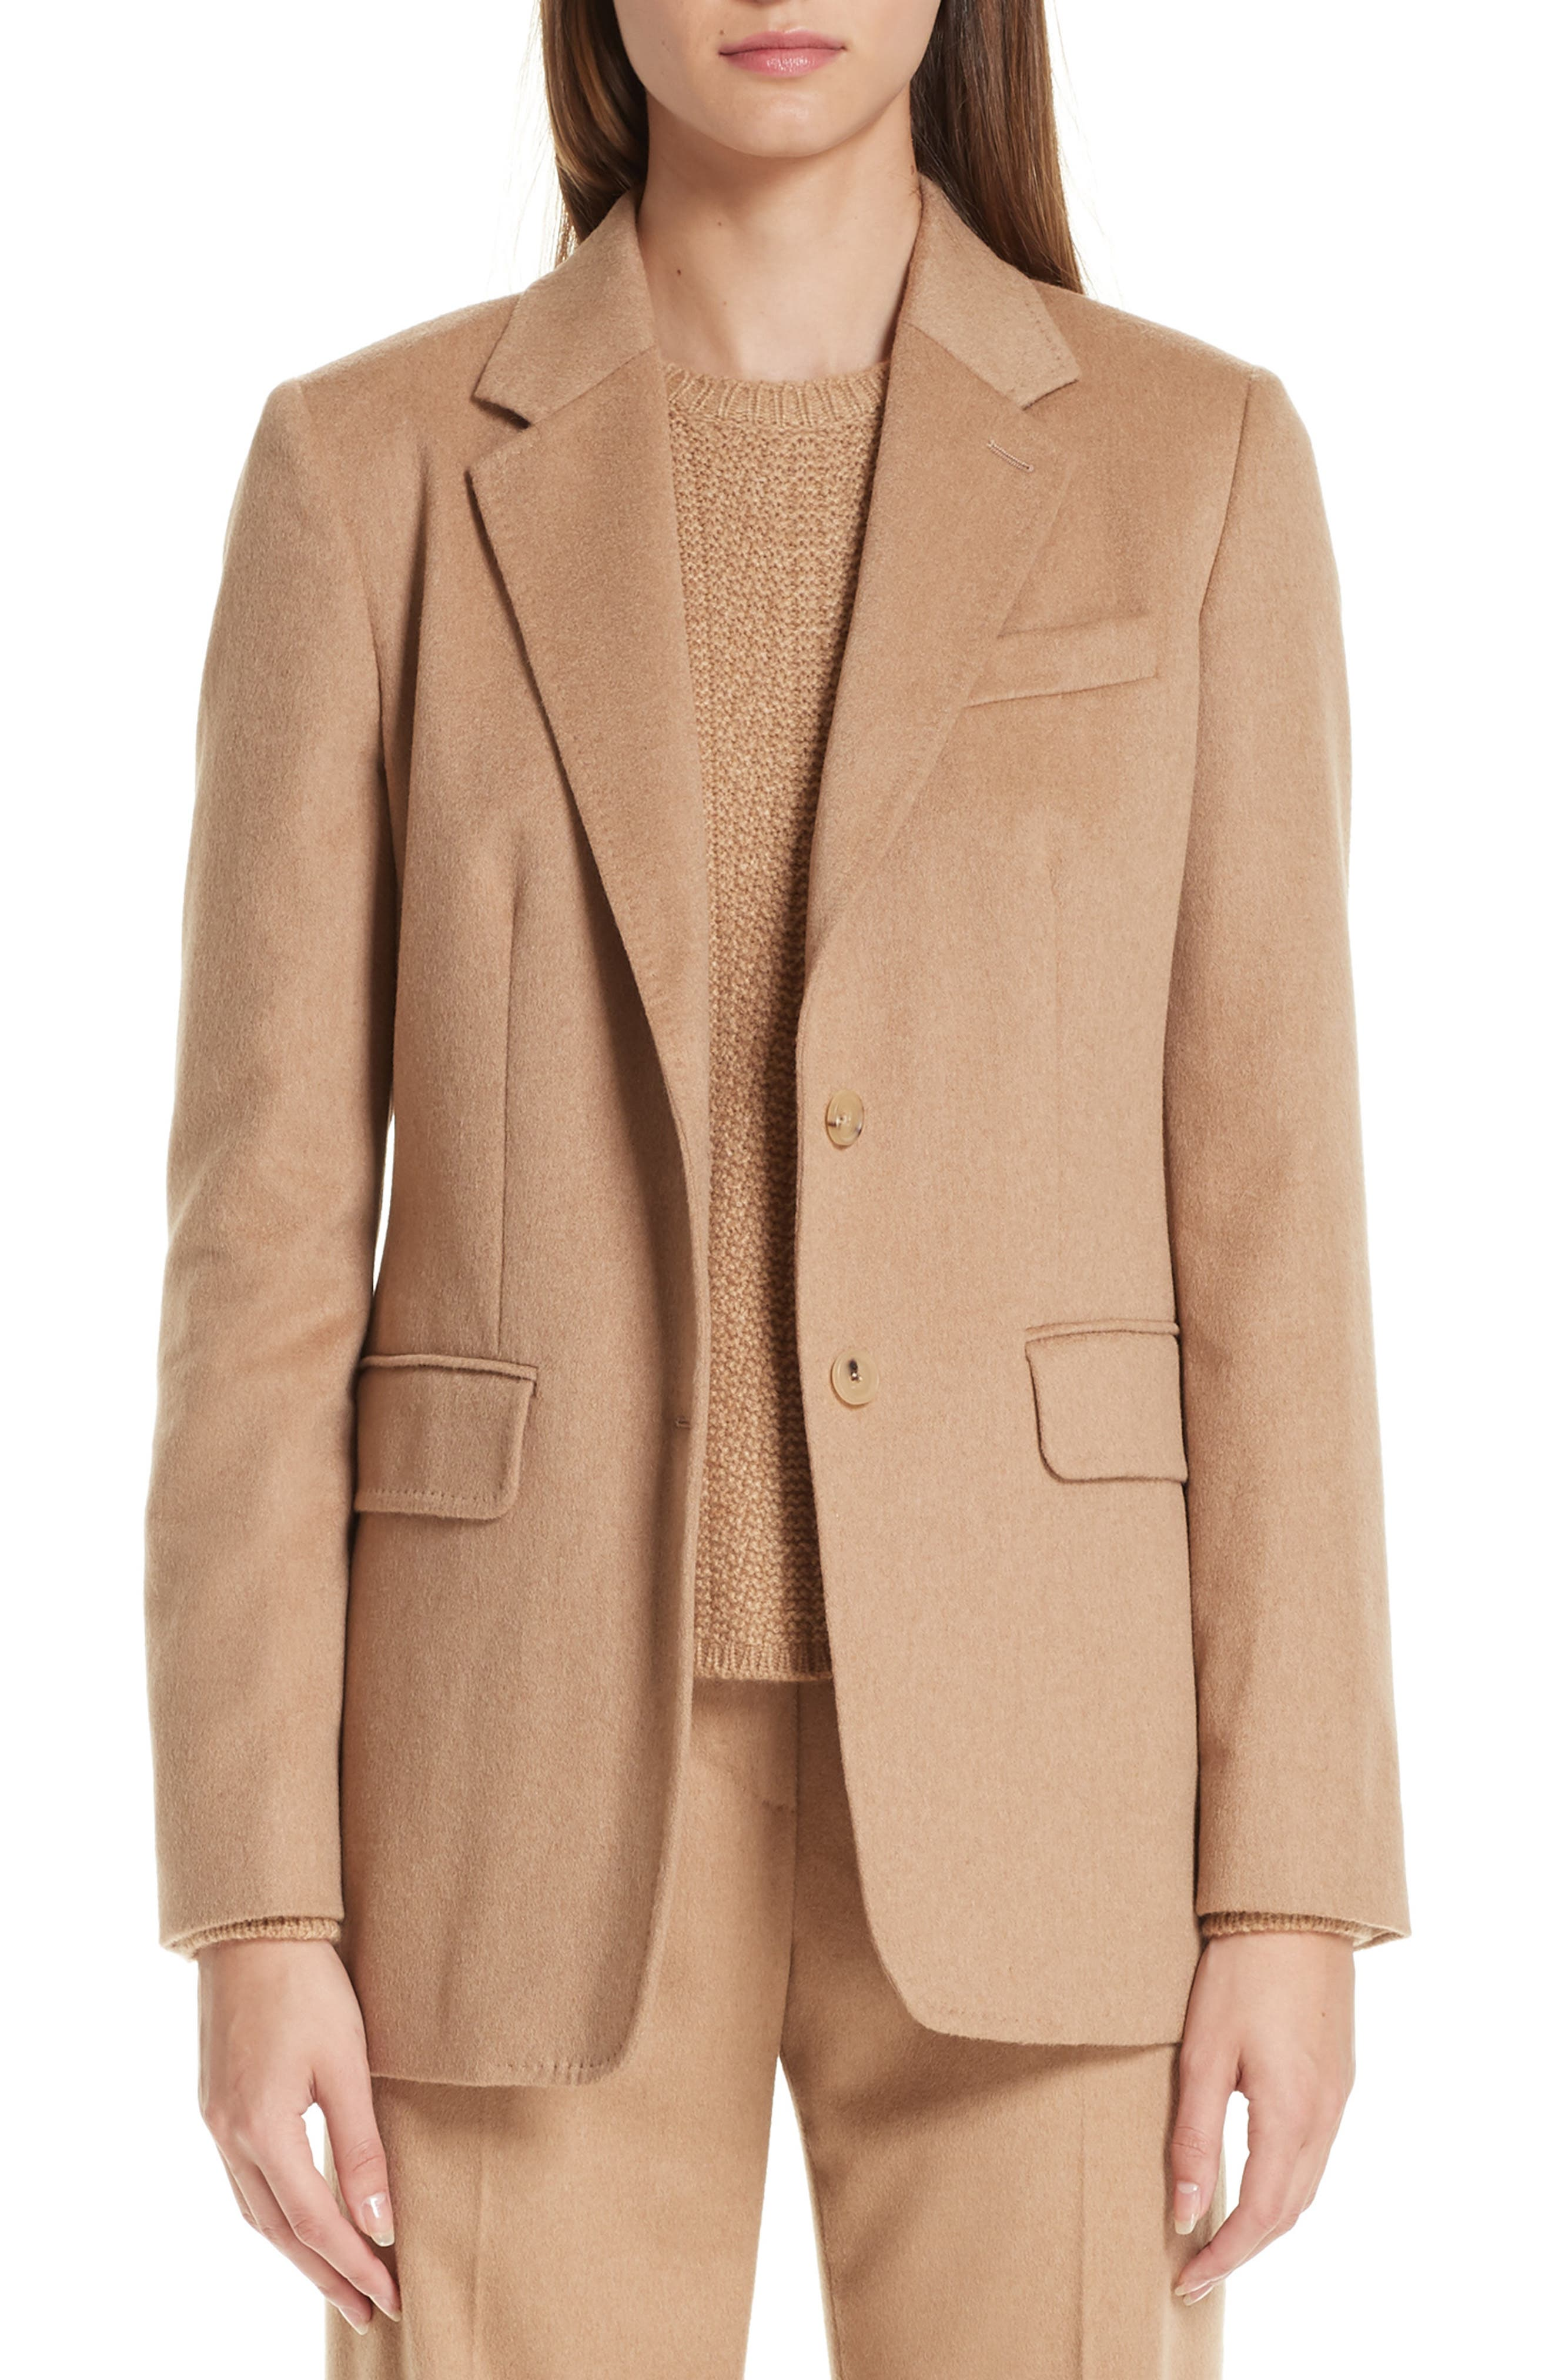 Panteon Camel Hair Jacket,                             Main thumbnail 1, color,                             232